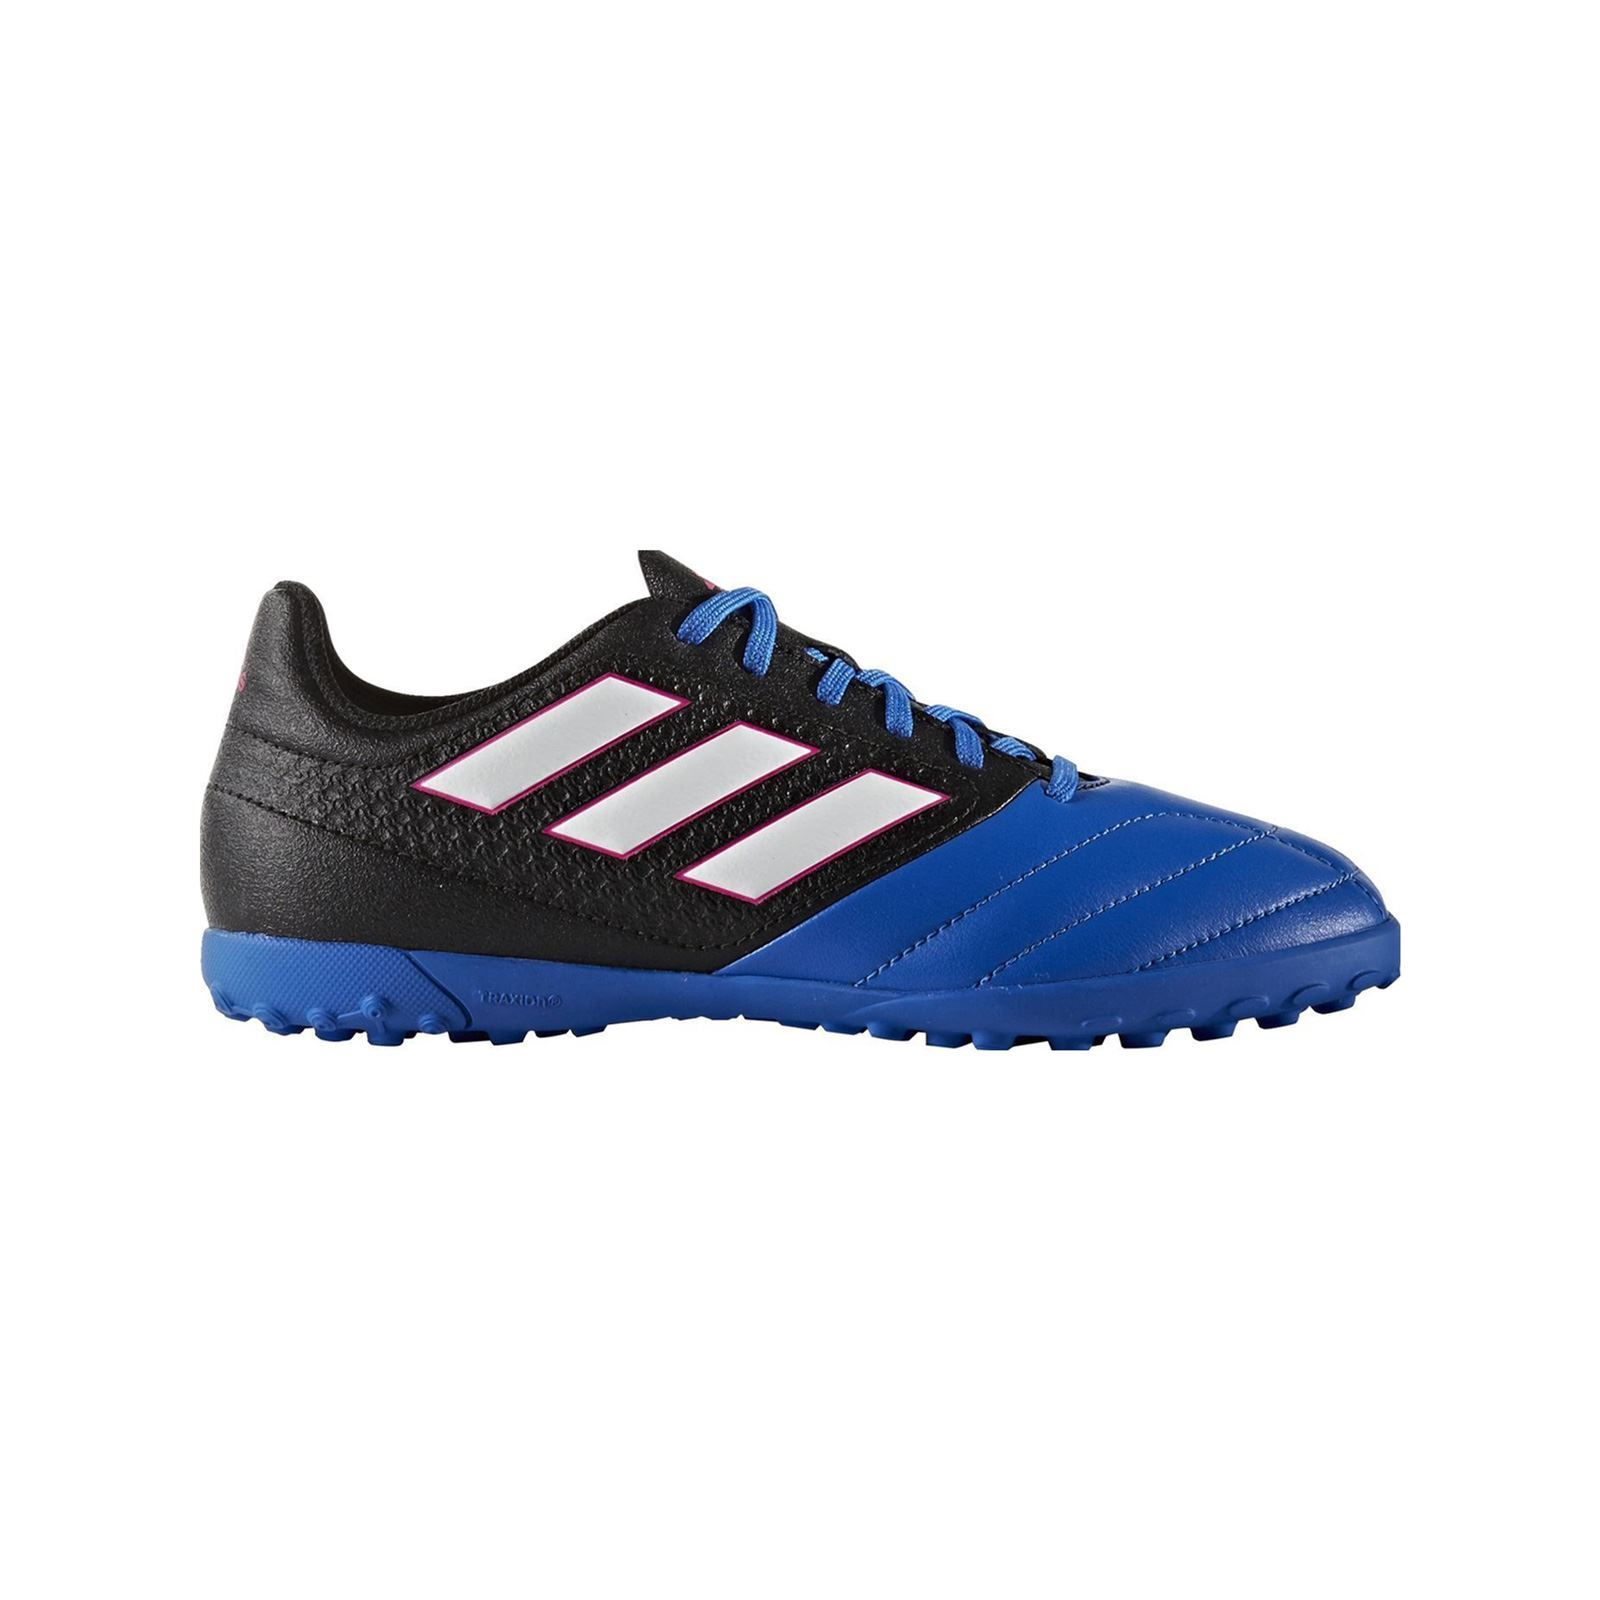 adidas performance ace 17.4 tf